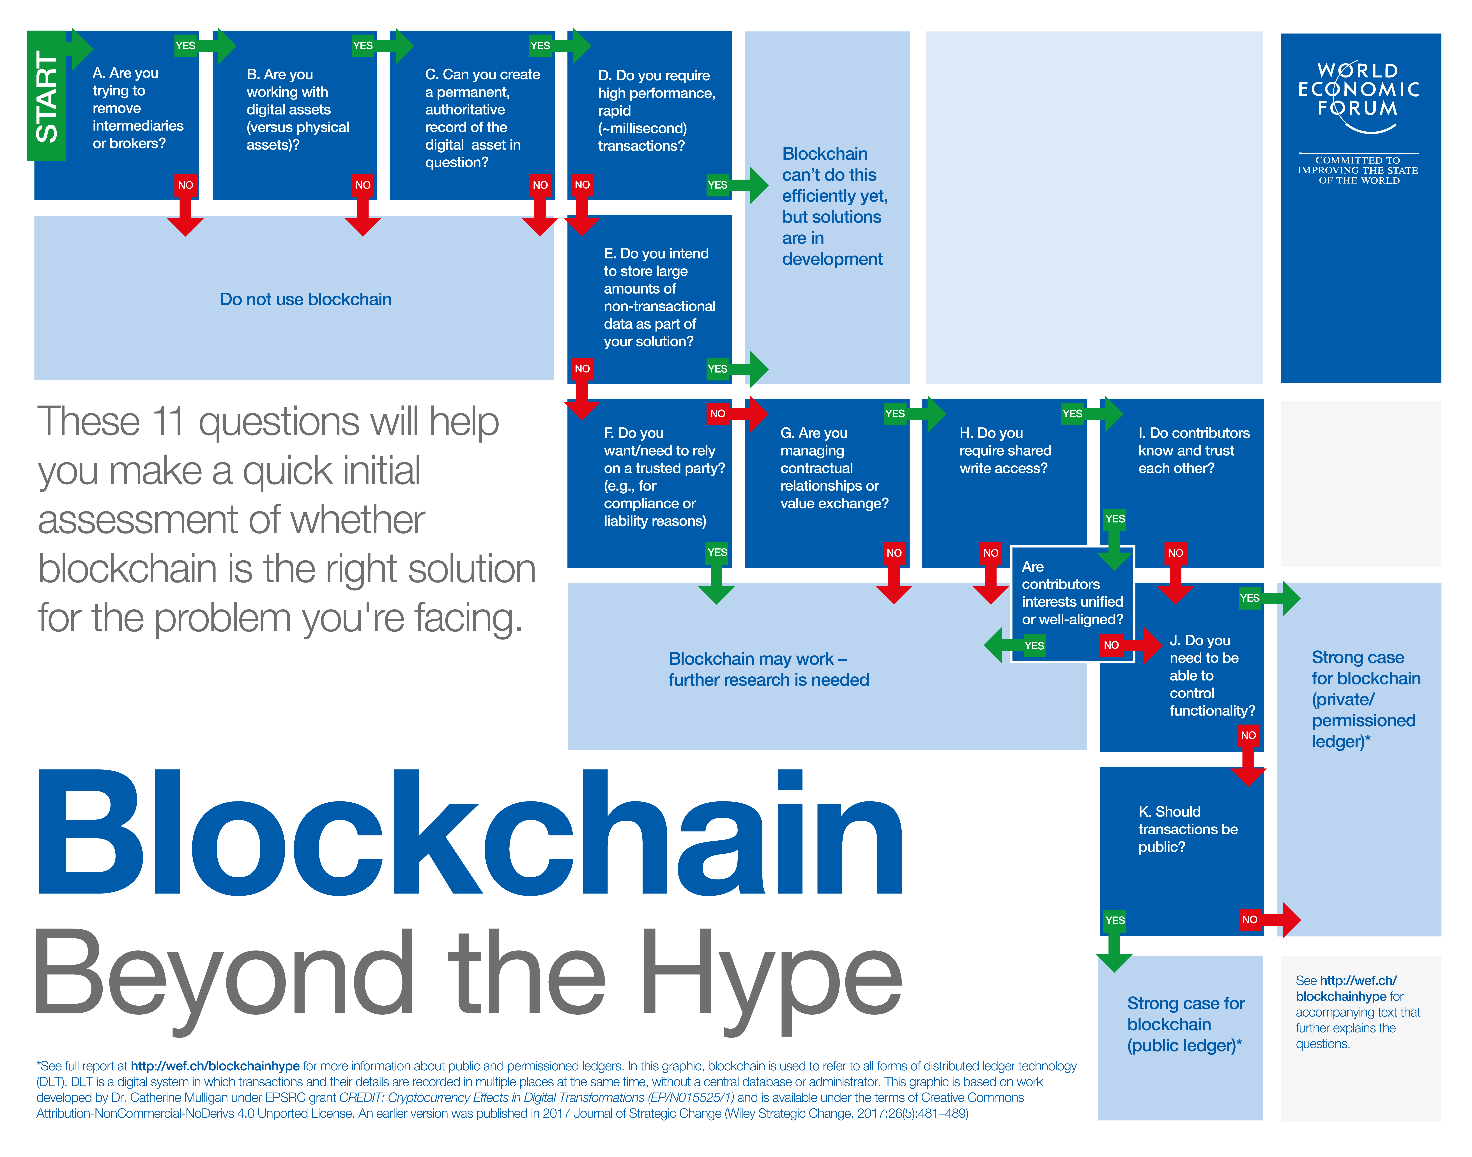 How to Implement Blockchain in the Supply Chain World Economic Forum